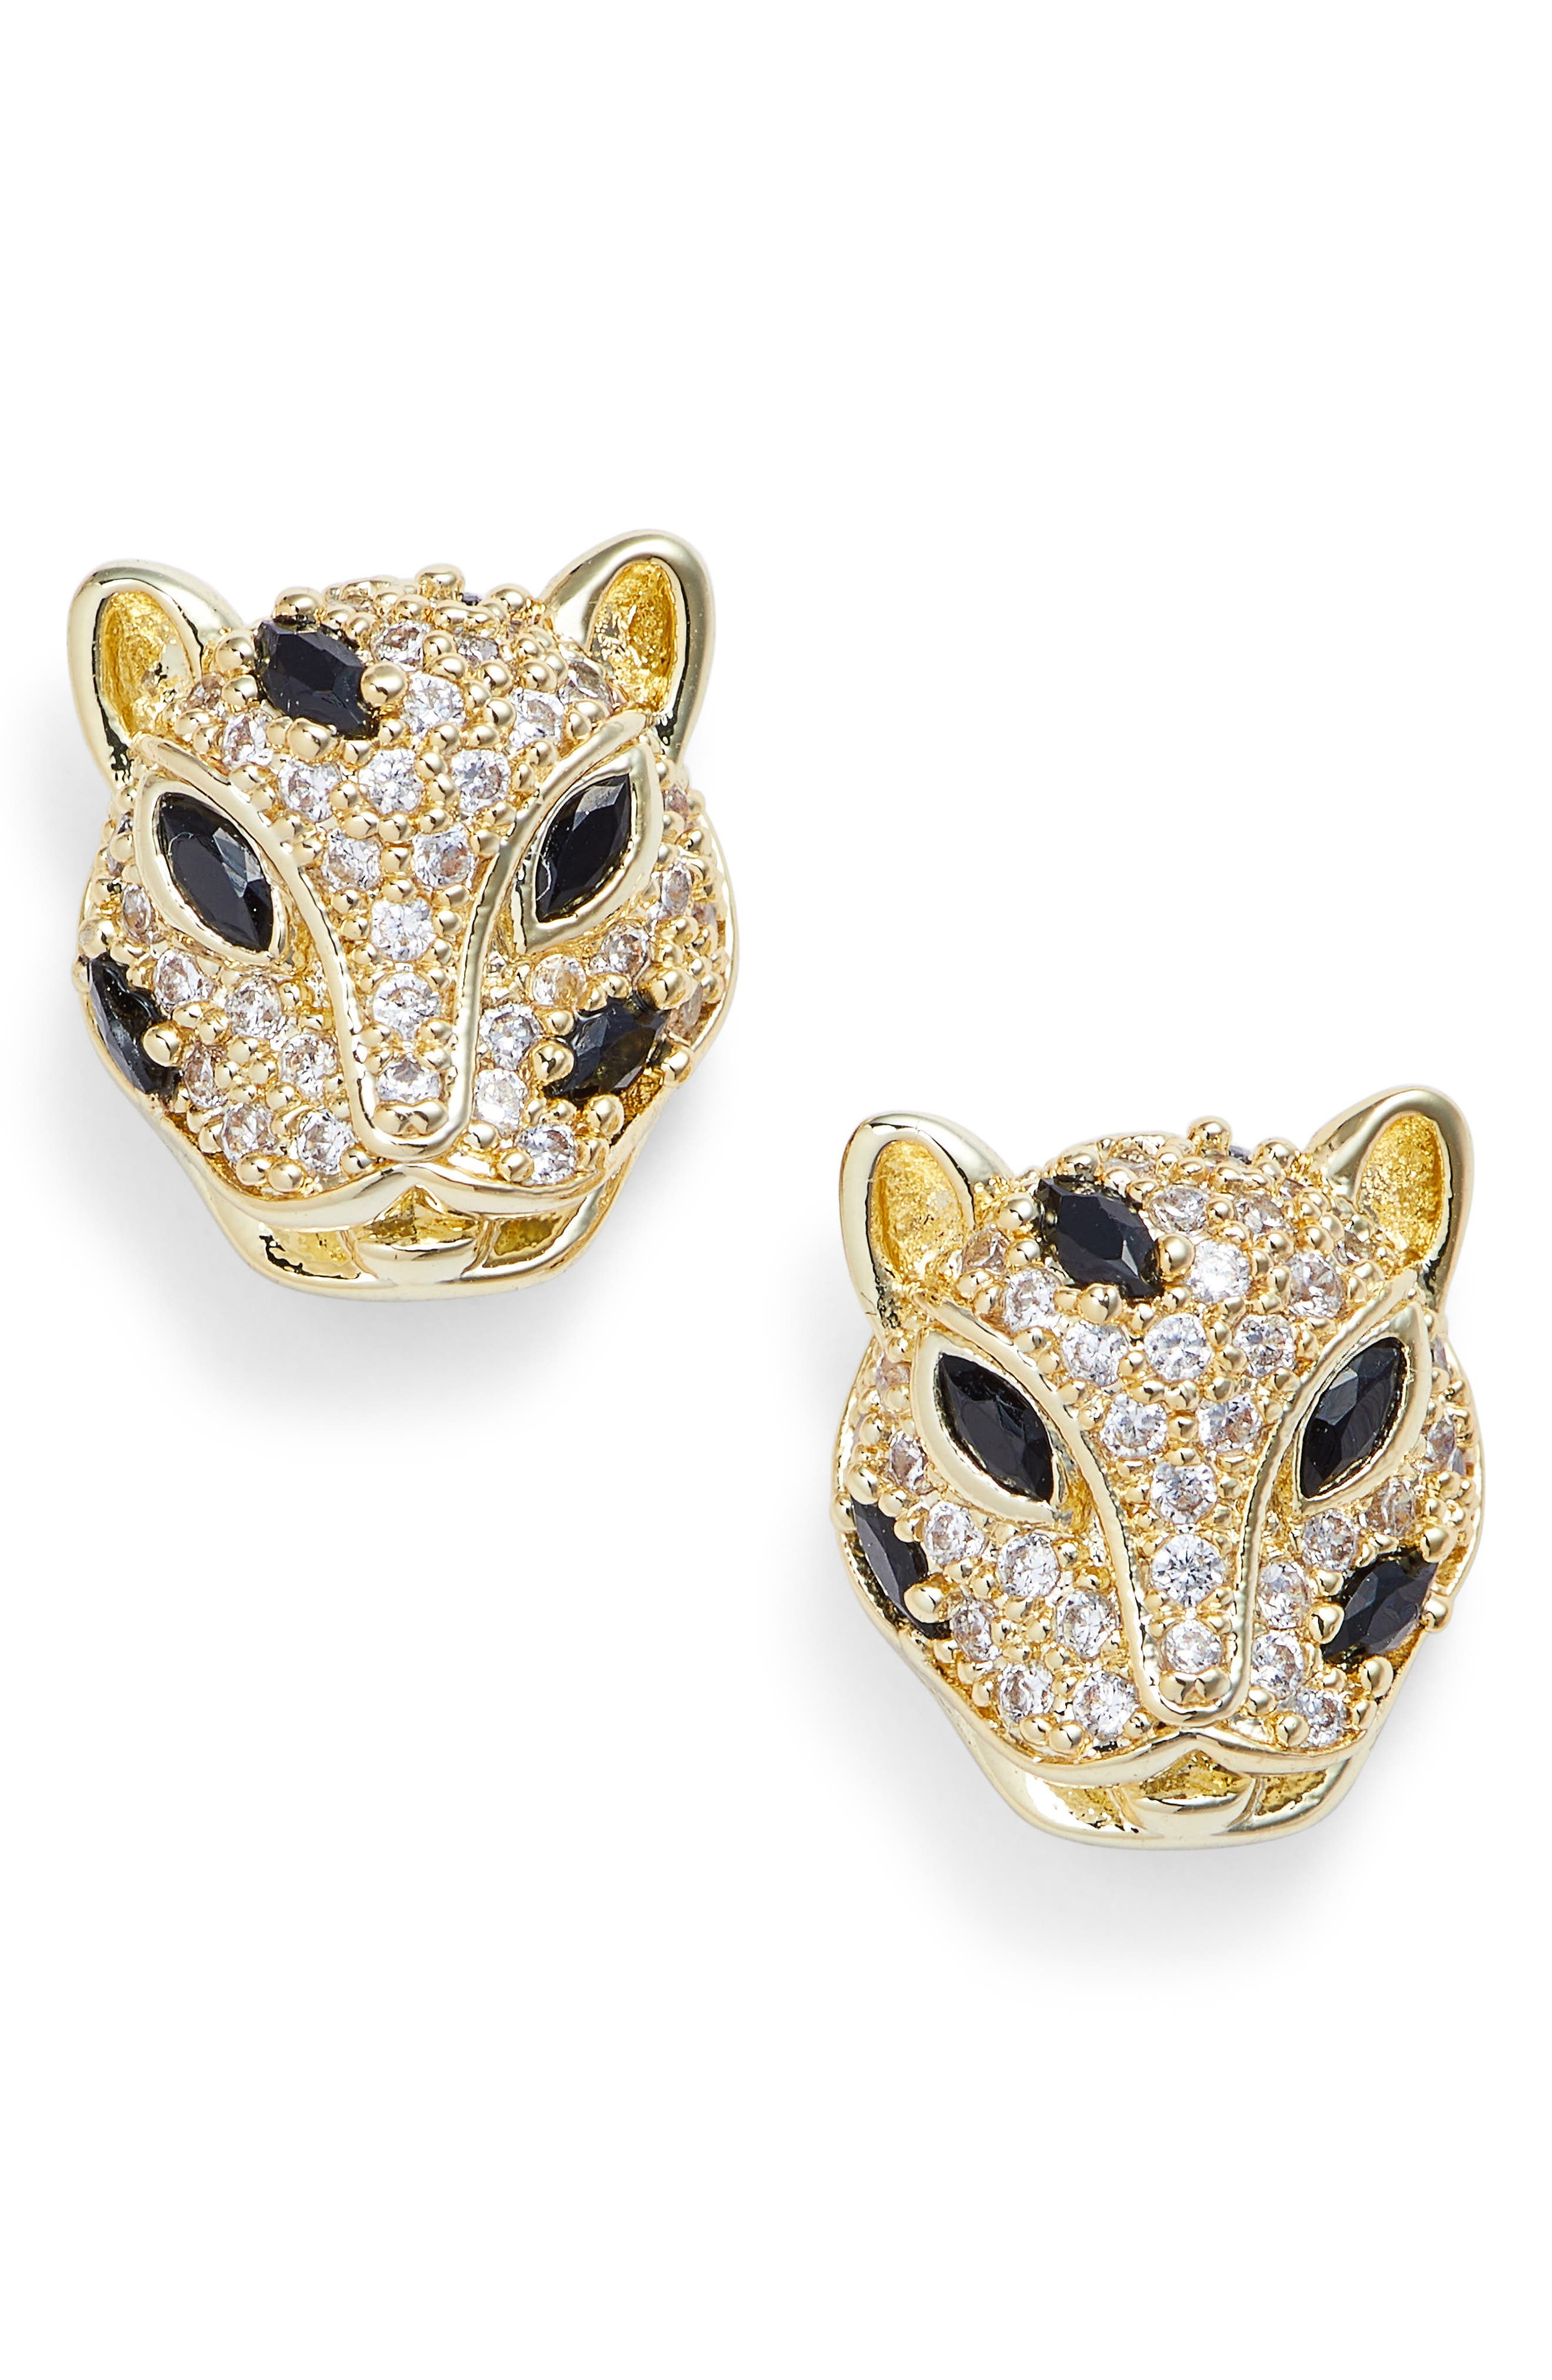 Baby Jaguar Stud Earrings,                         Main,                         color, GOLD AND WHITE CZ